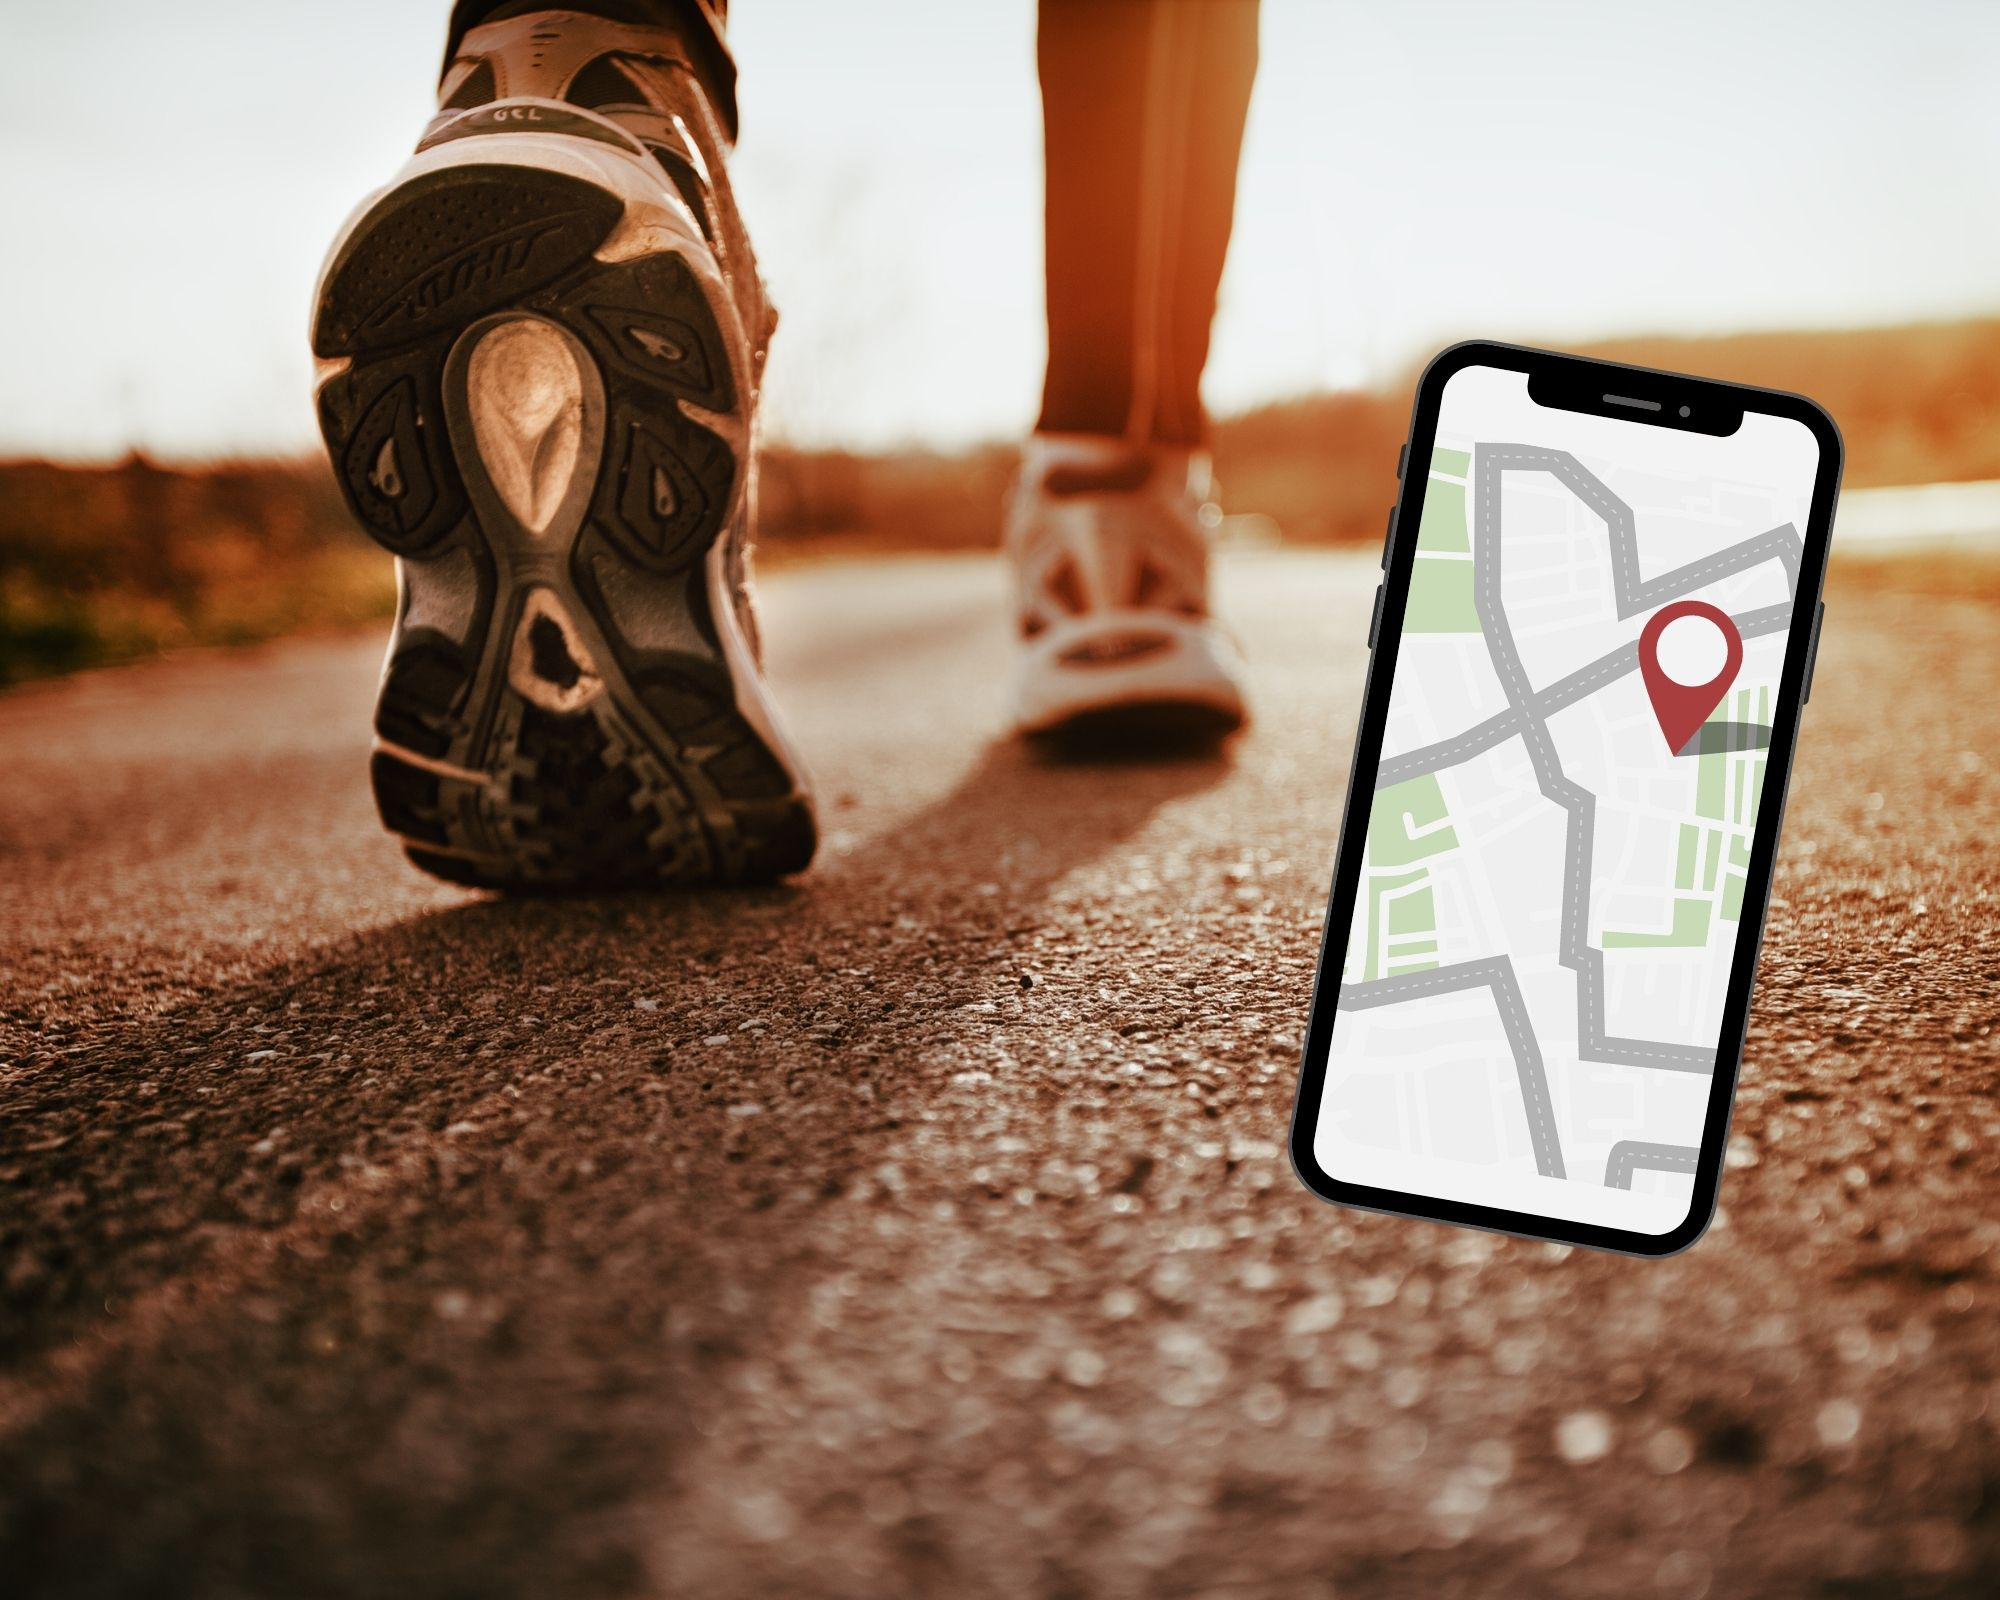 Feet running on pavement - cell phone with a map on it